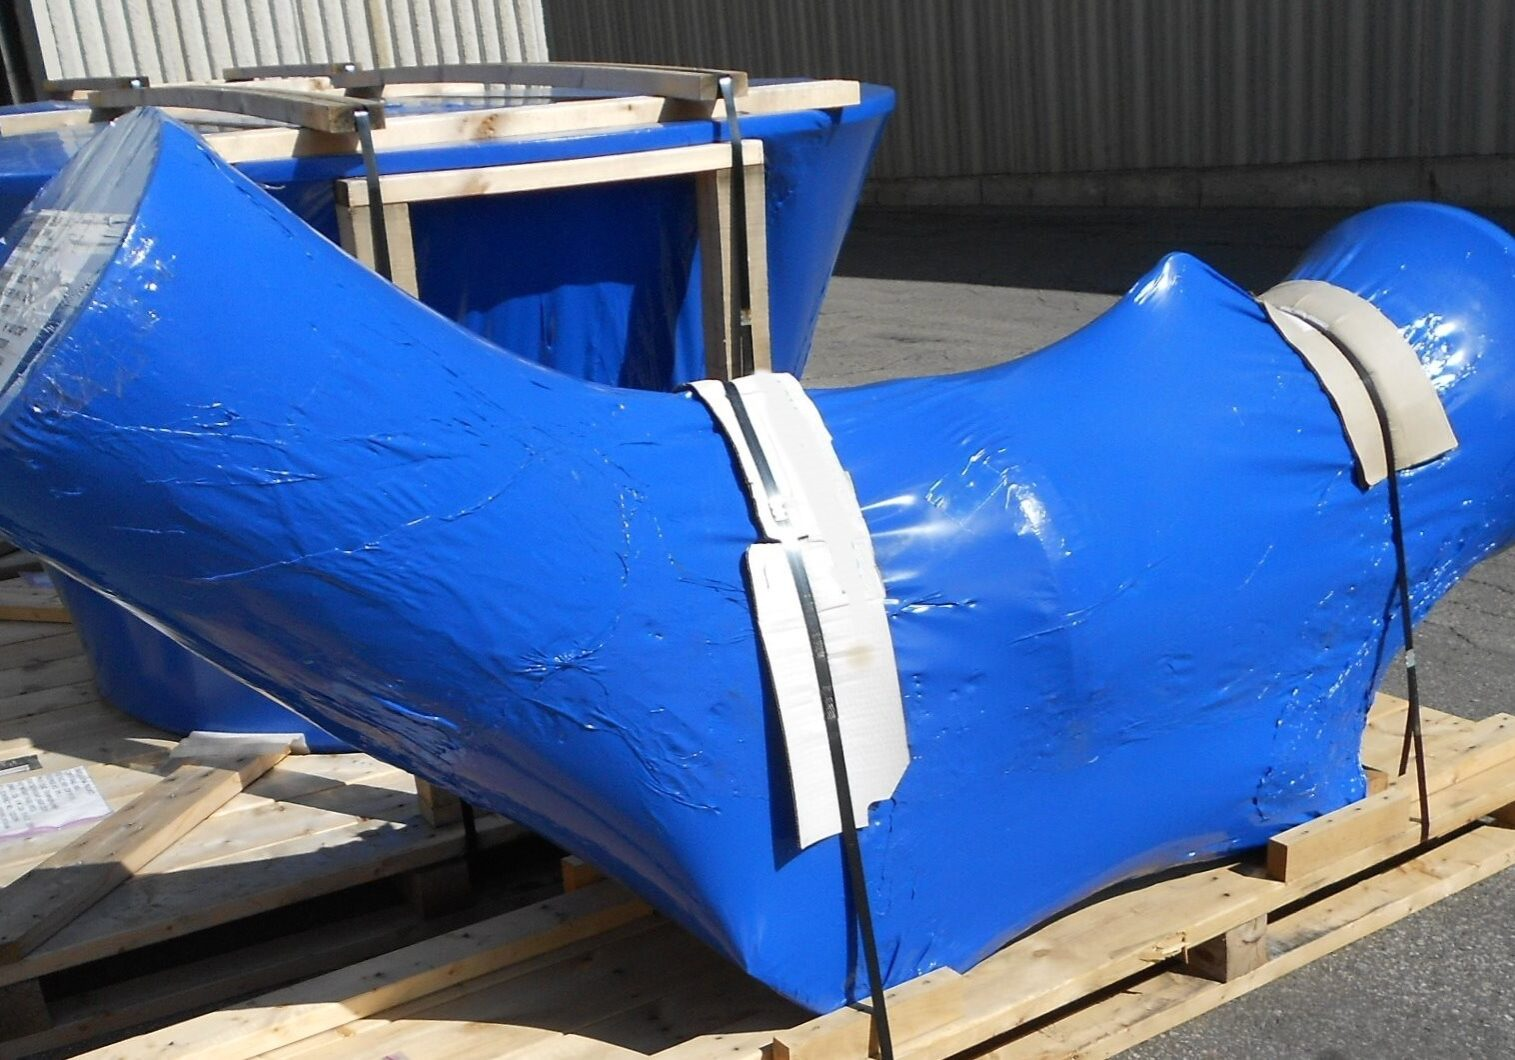 Large outdoor pipe valve wrapped in vci corrosion prevention blue shrink film